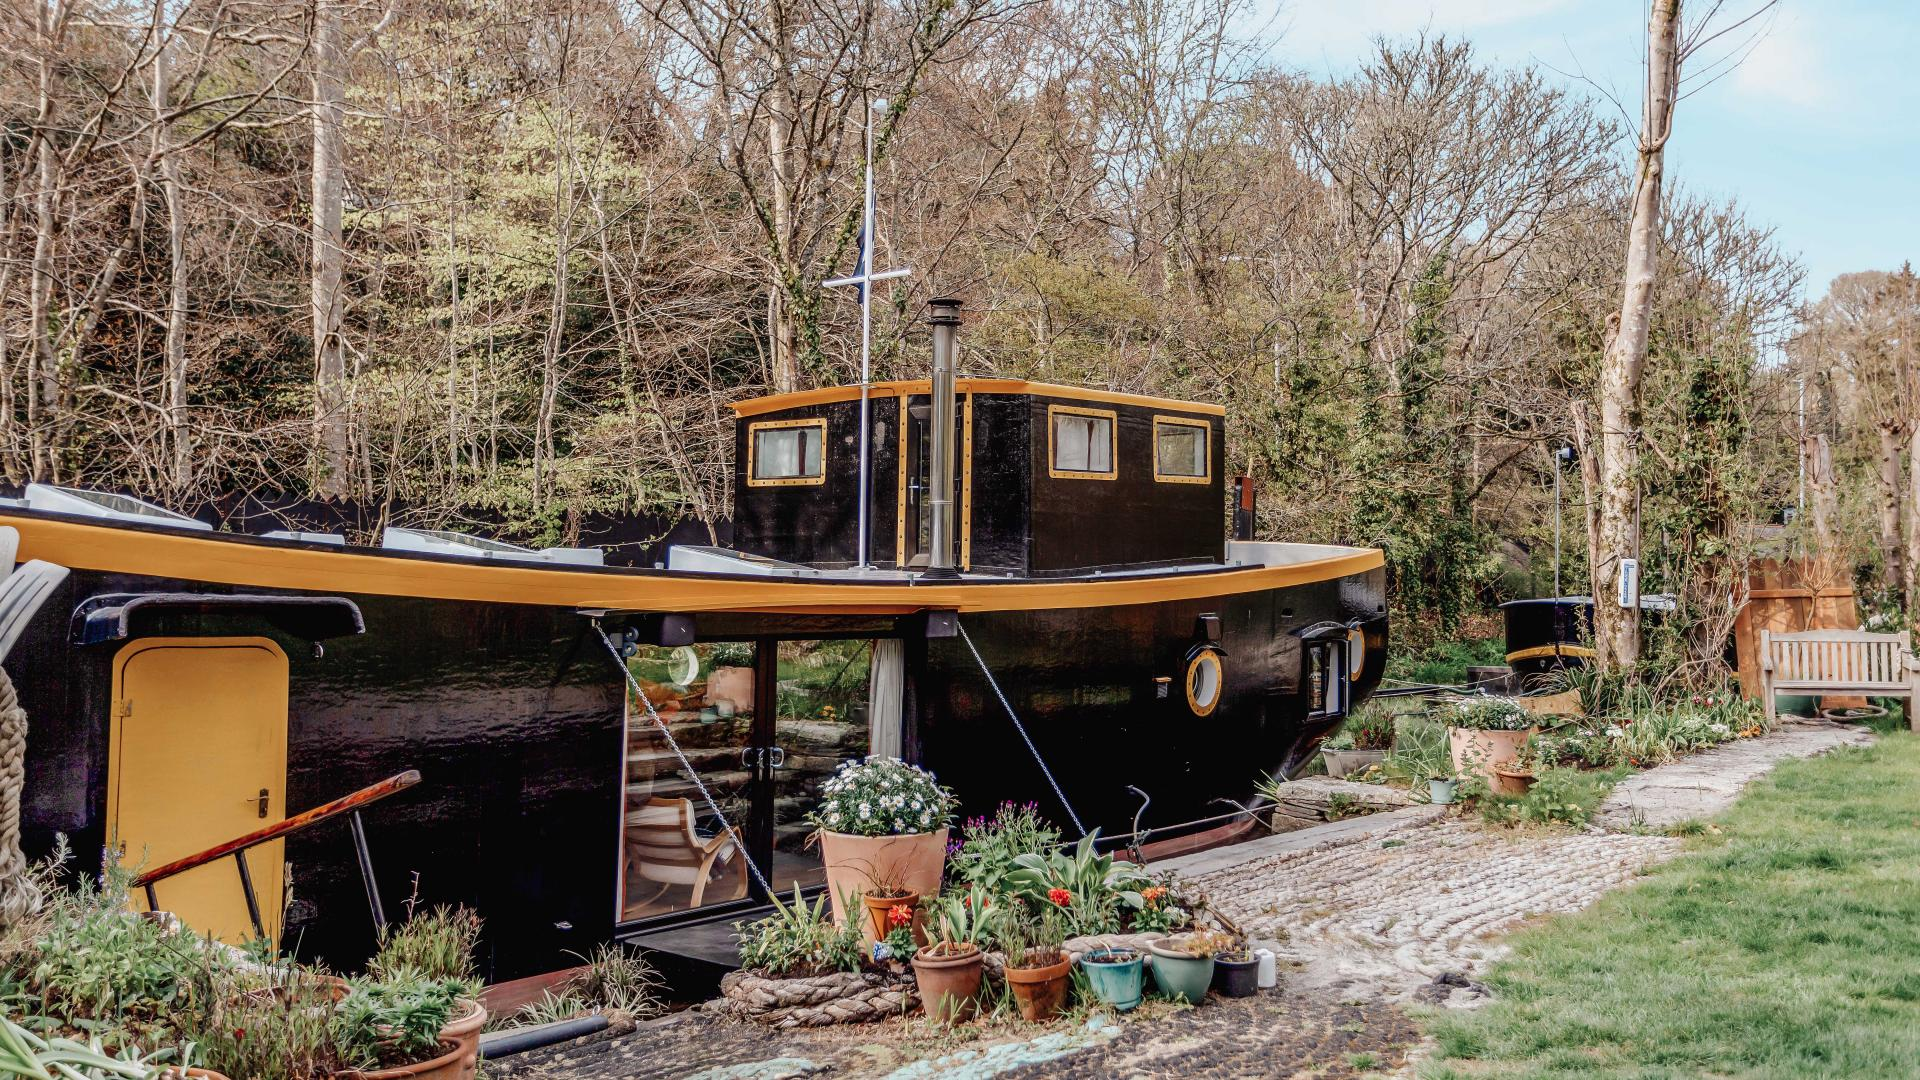 Self-catering accommodation: Cornwall barge exterior